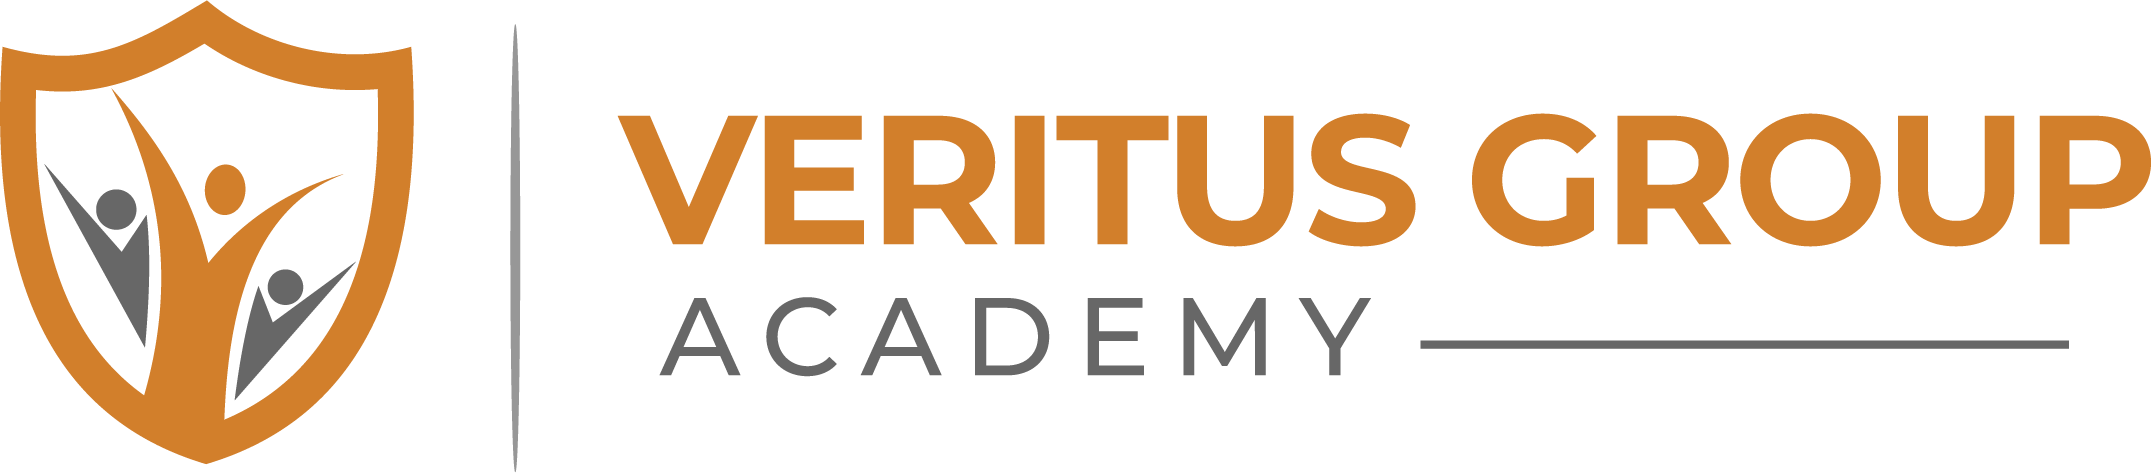 Veritus Group Academy